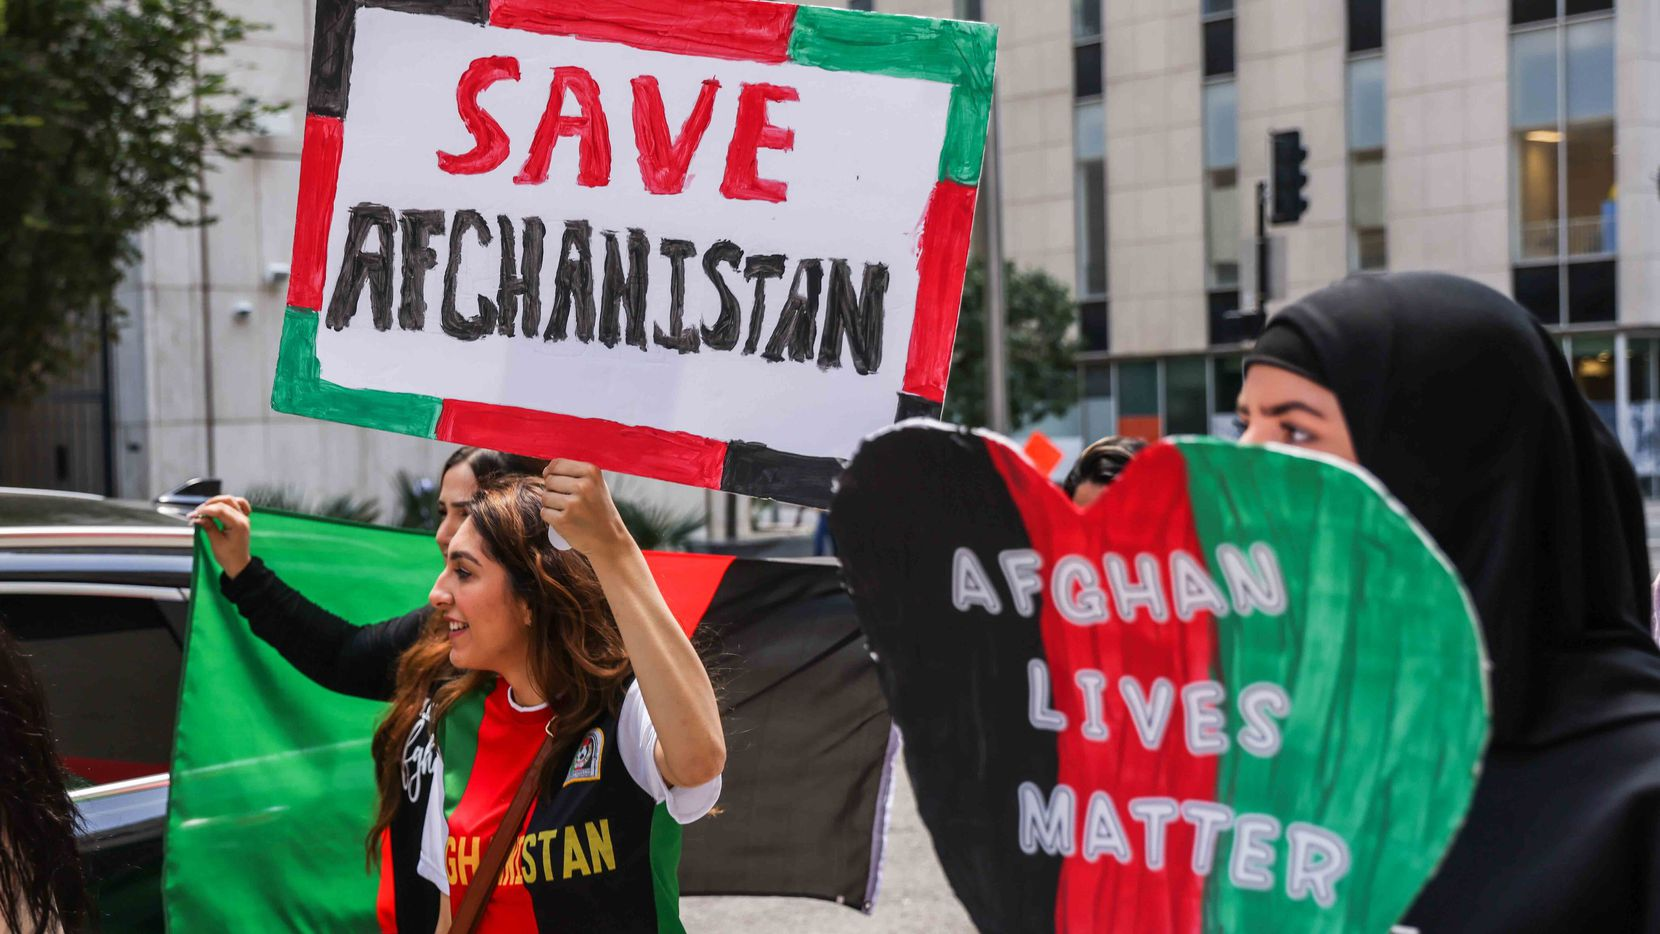 Demonstrators marched through part of downtown Dallas on Saturday, Aug. 21, 2021, to call for more help by the U.S. to evacuate thousands of Afghans desperate to get out of the war-ravaged country.